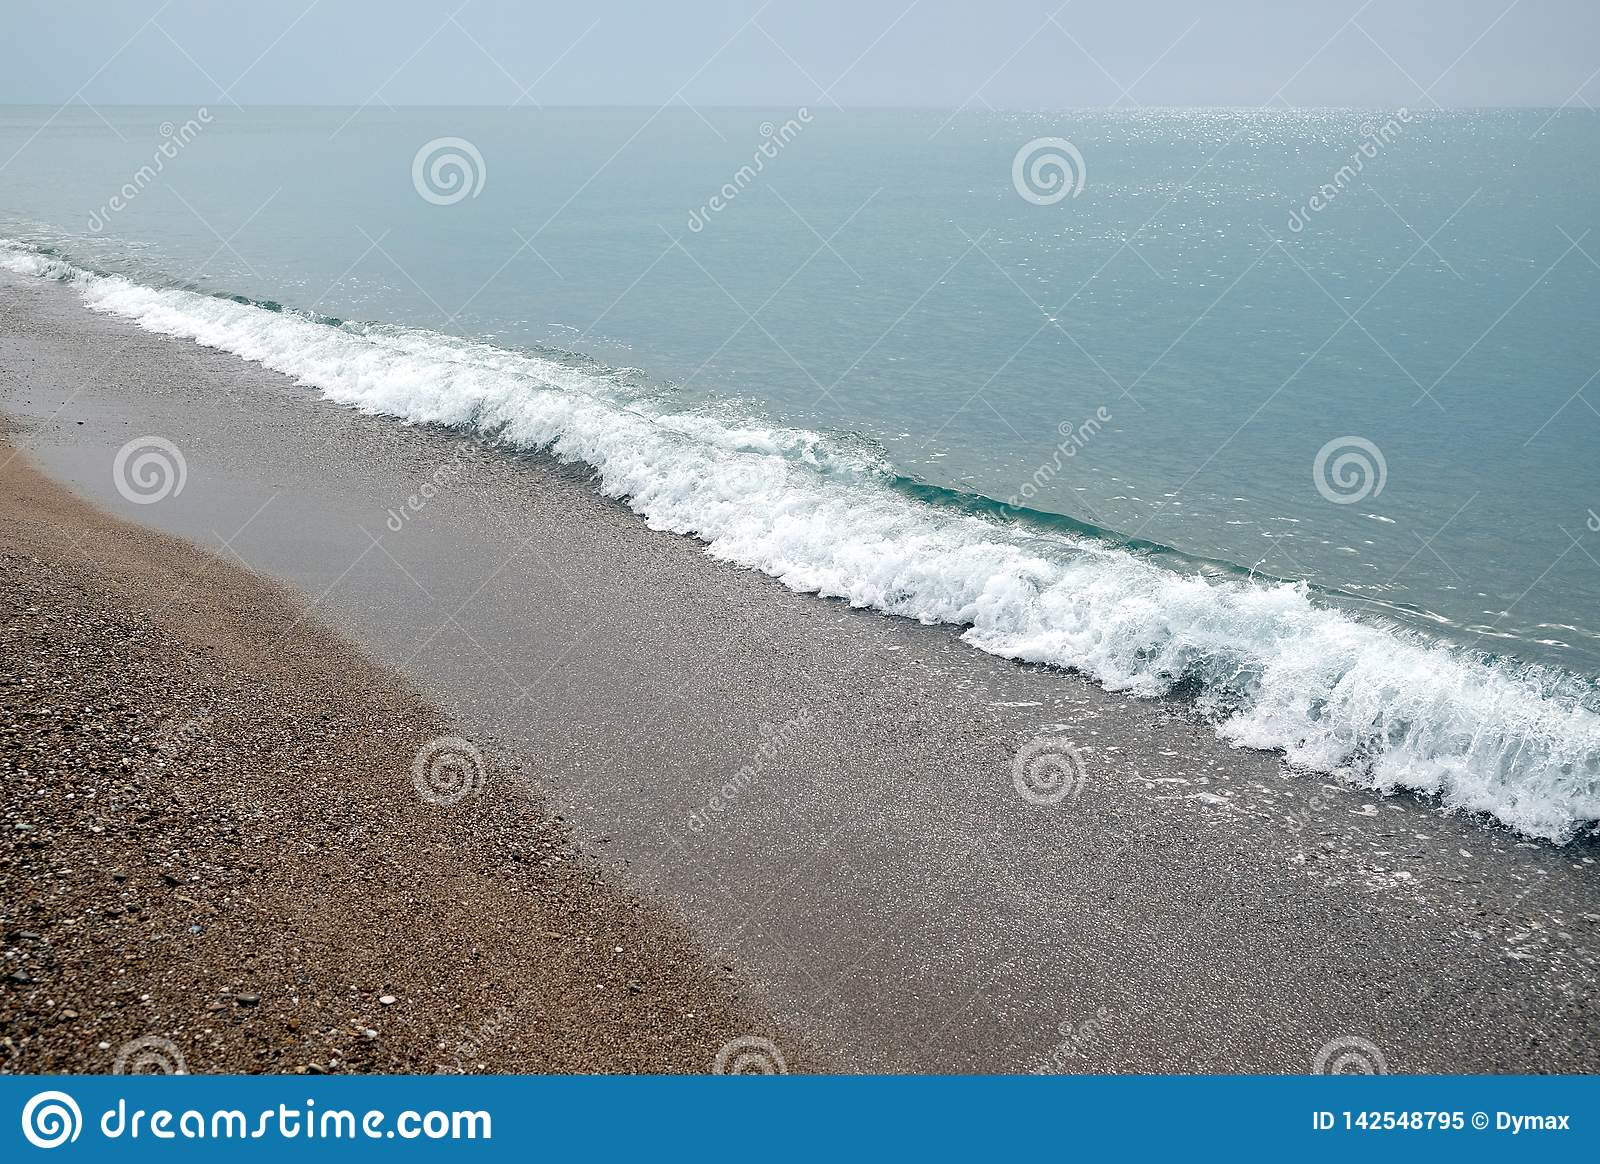 Seascape with calm sea surf with waves and sun reflecton on water on skyline